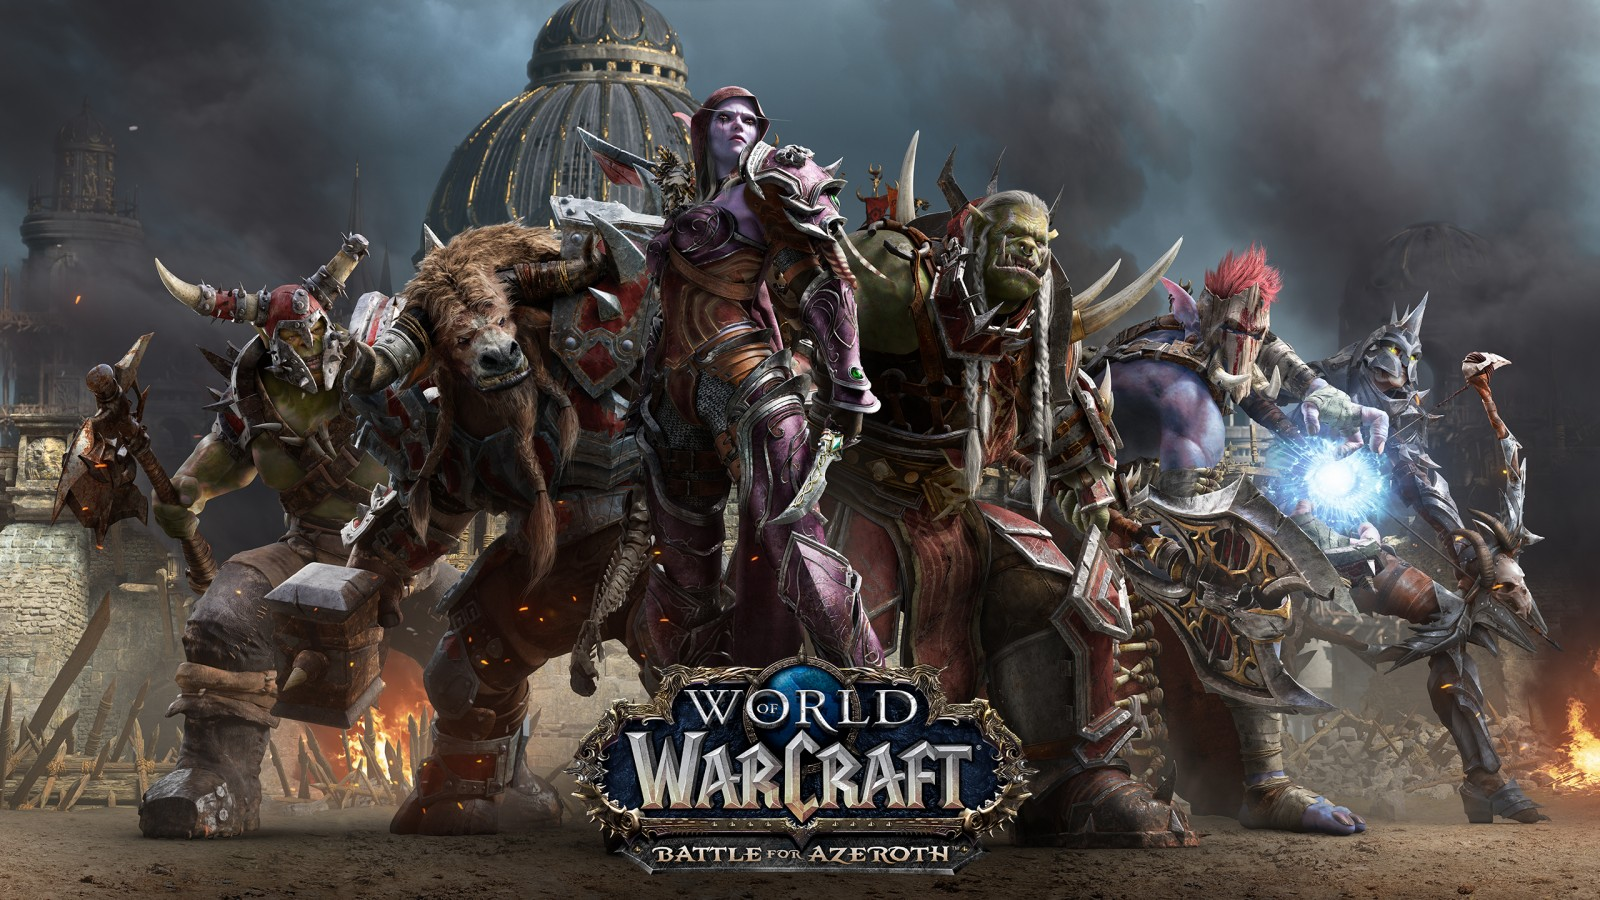 Warcraft world of warcraft